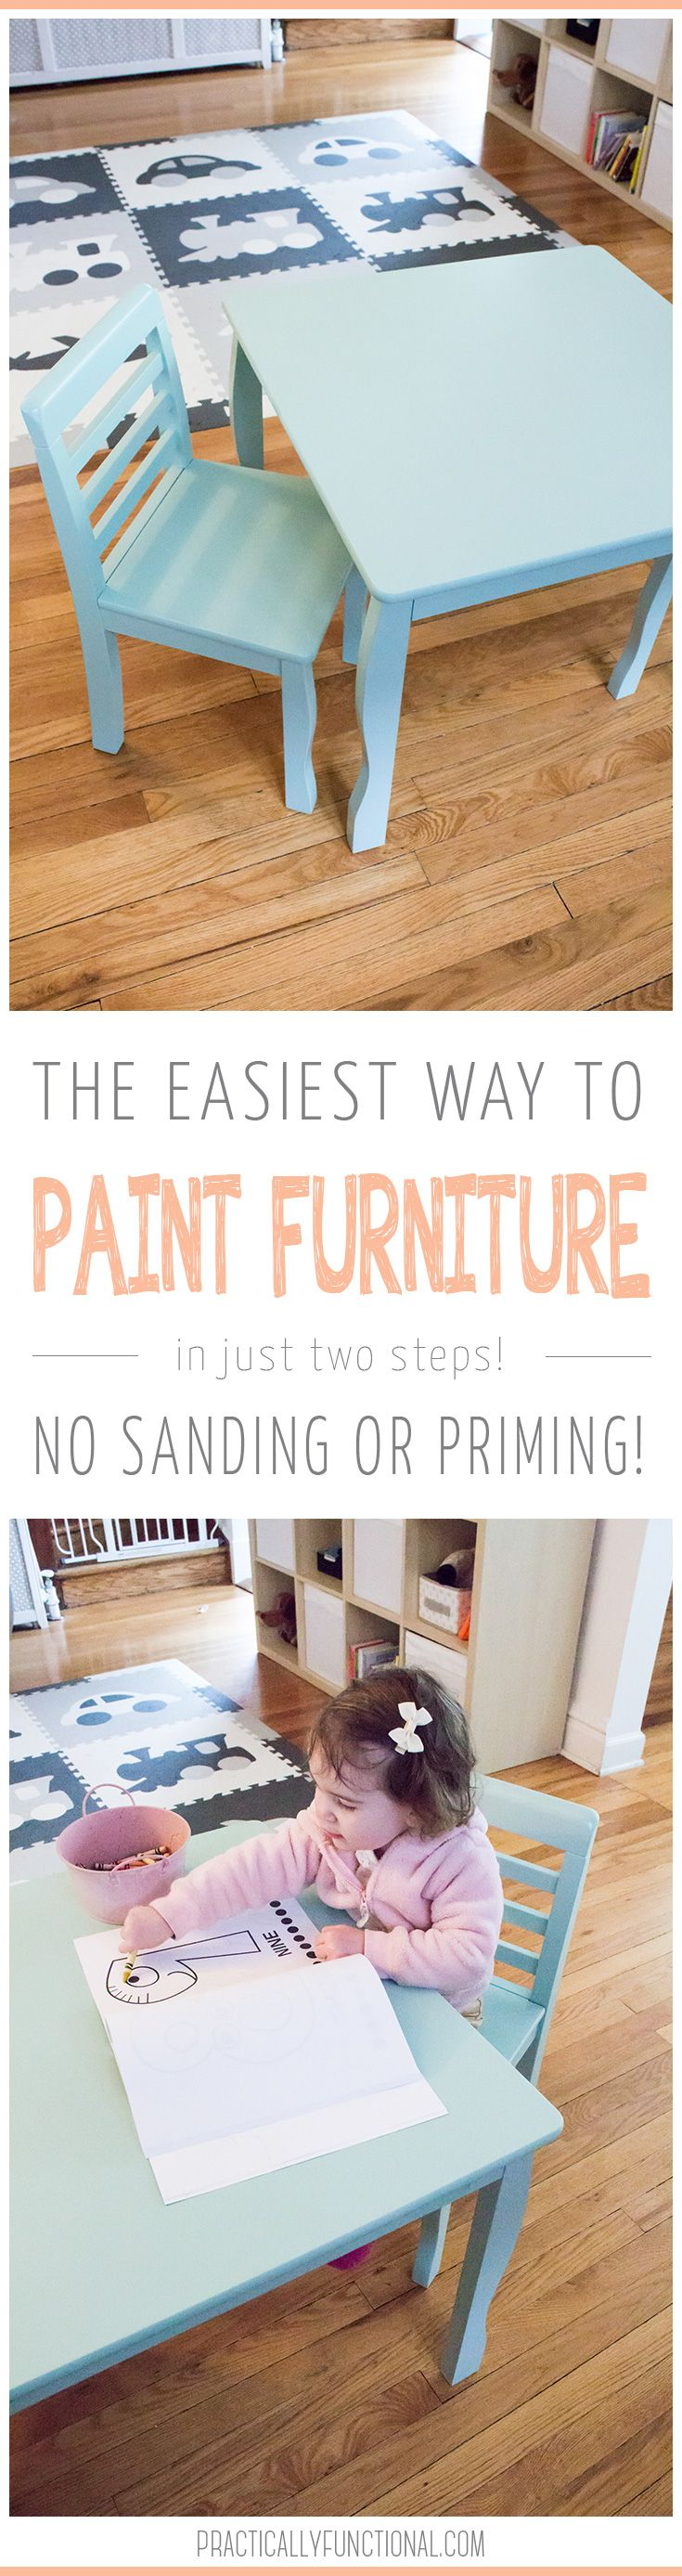 Paint wood furniture without having to sand or prime it first  So easy to do. The Easiest Way To Paint Furniture   No Sanding Or Priming